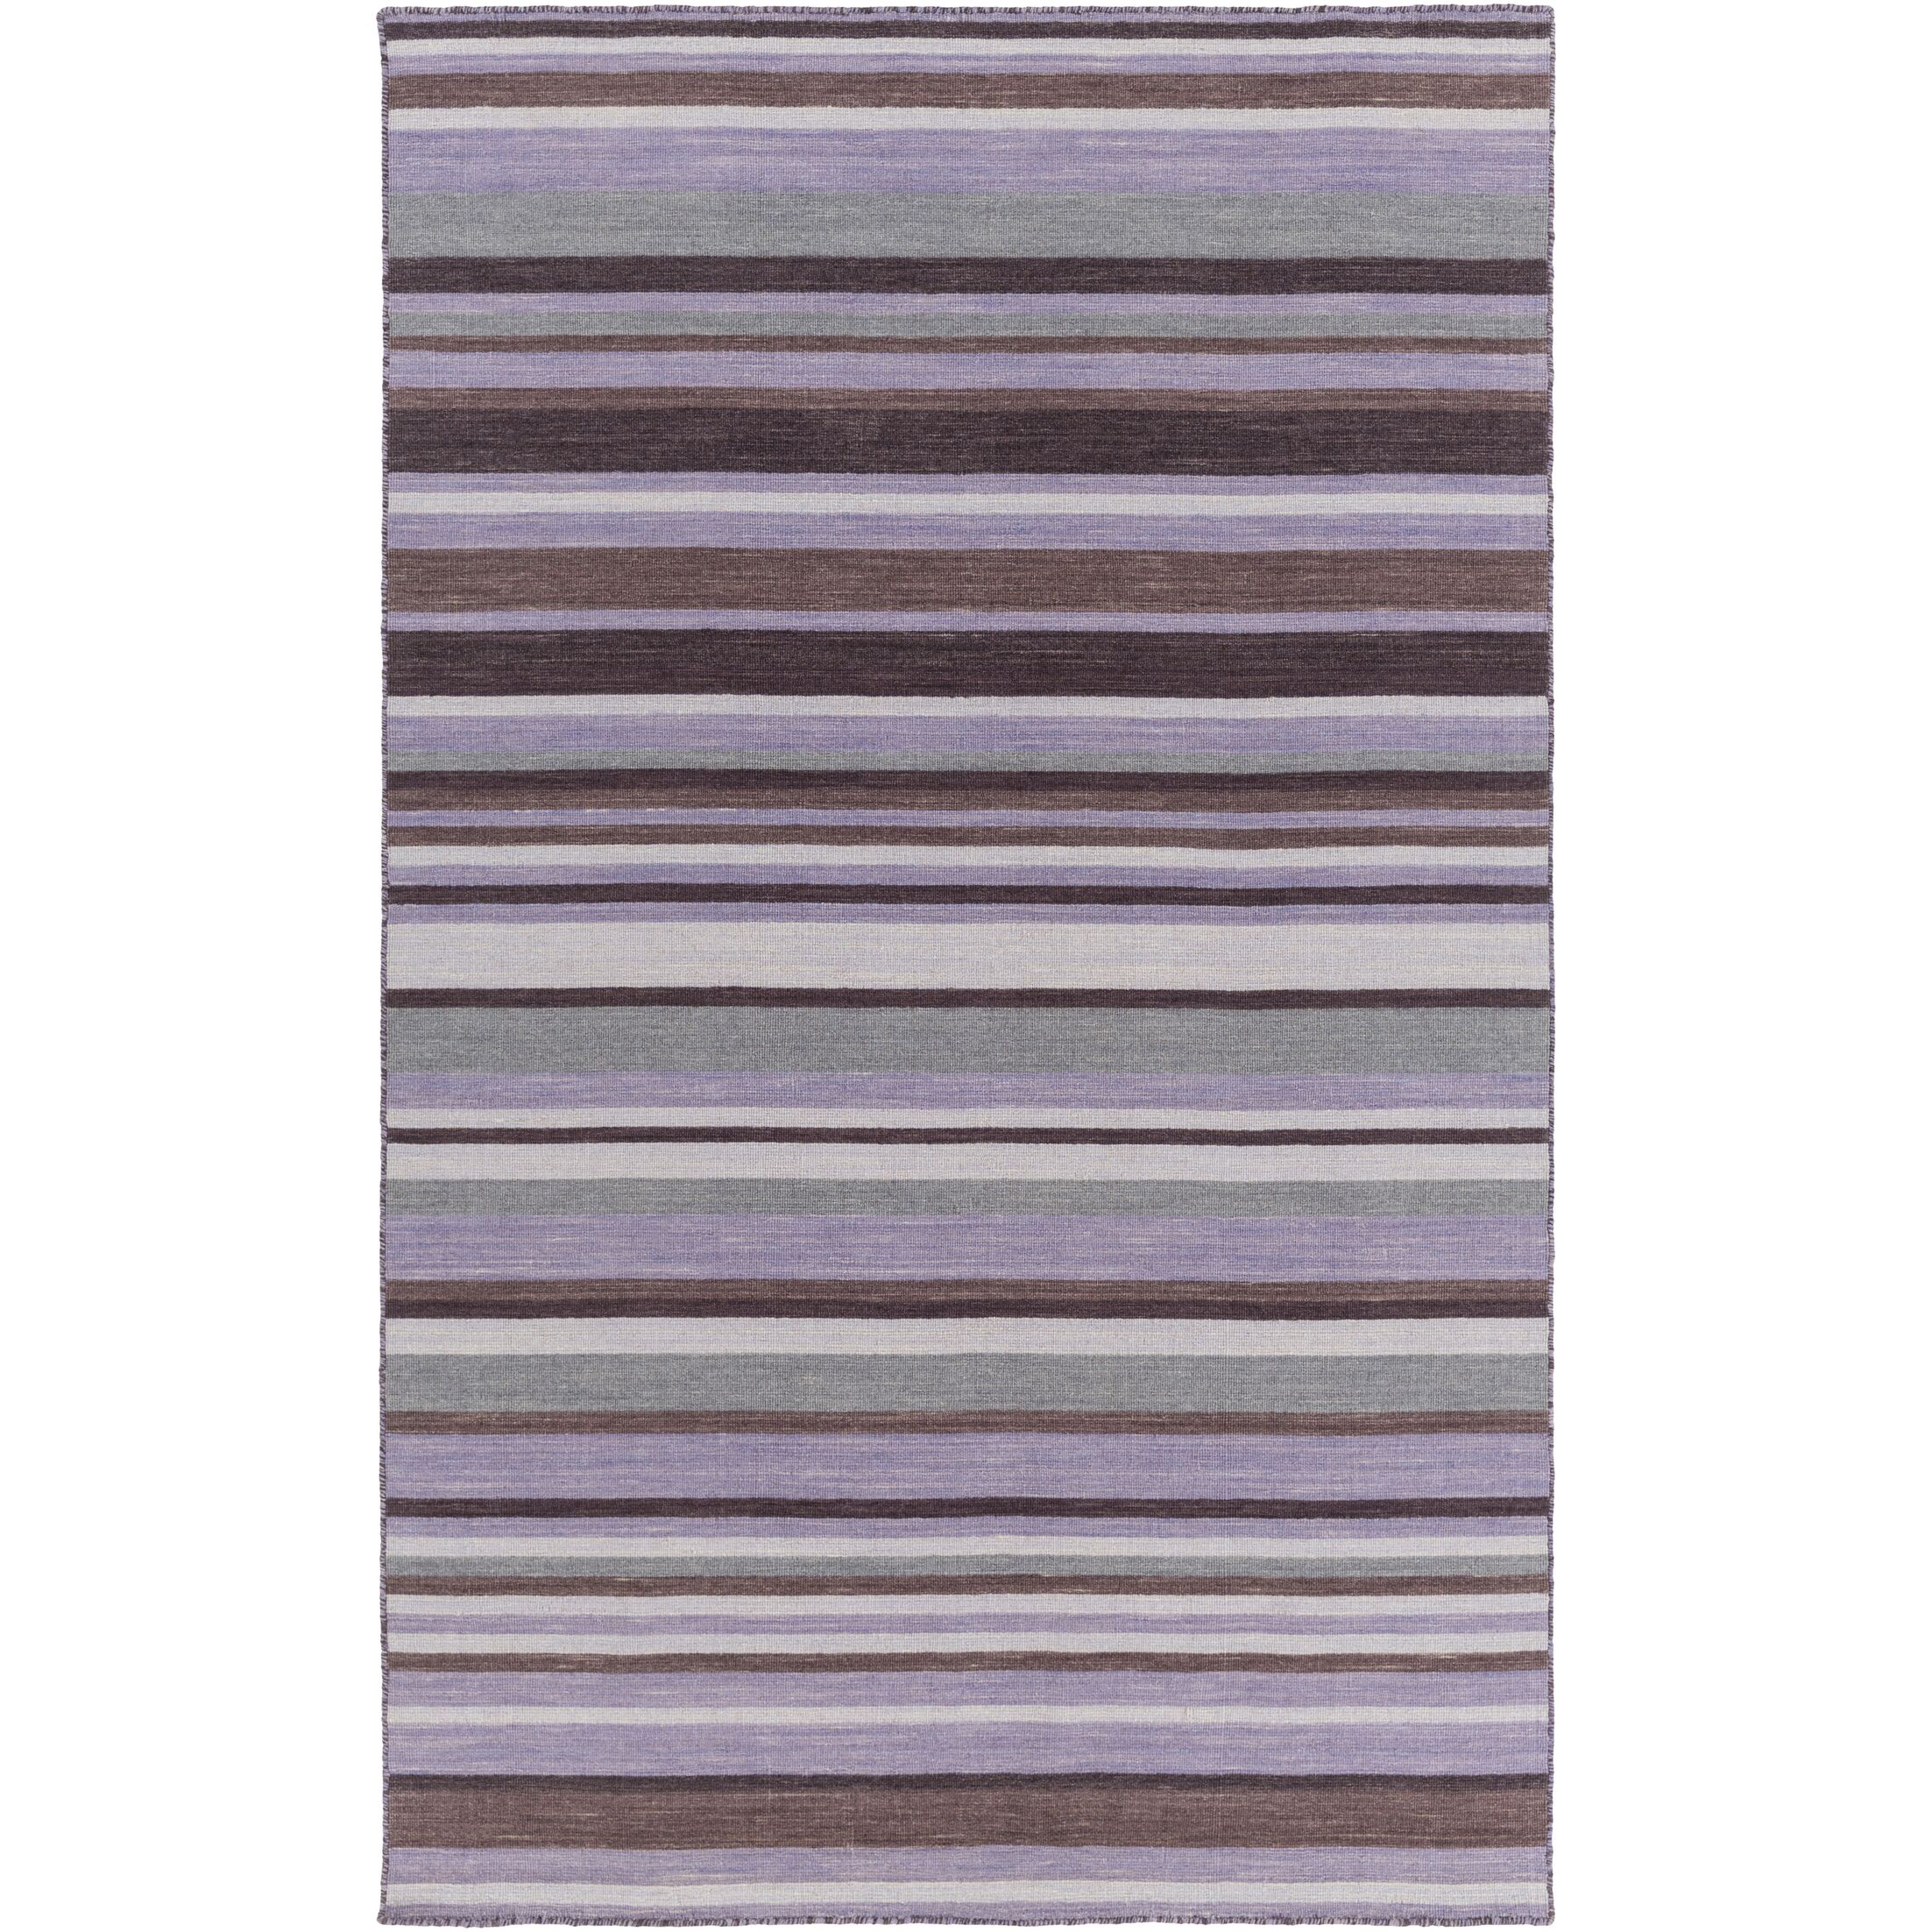 Dixon Hand-Woven Bright Purple Area Rug Rug Size: Rectangle 5' x 8'